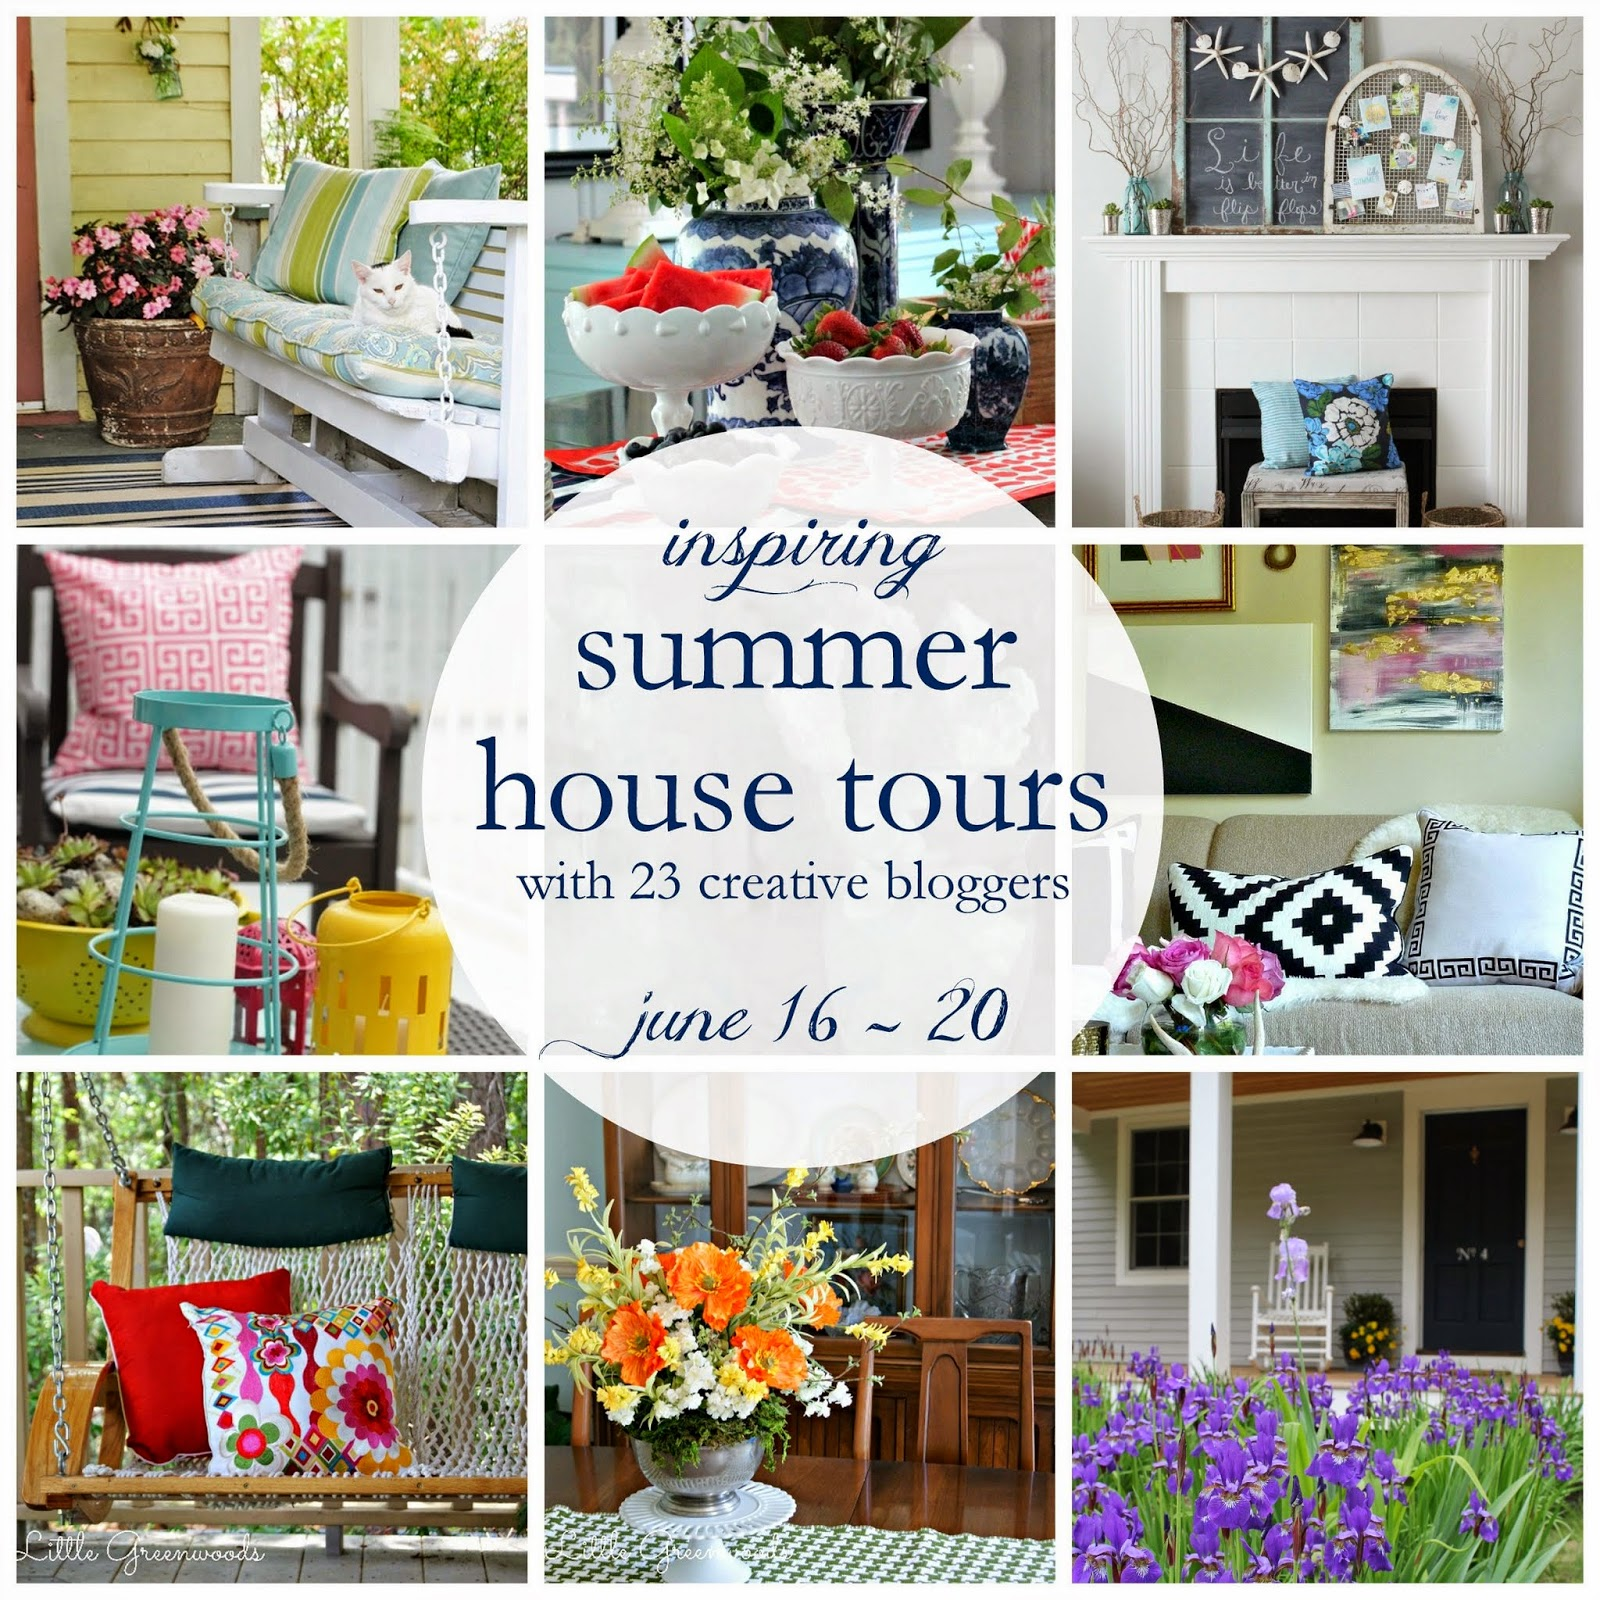 rp_Summer-House-Tour-button-1.jpg